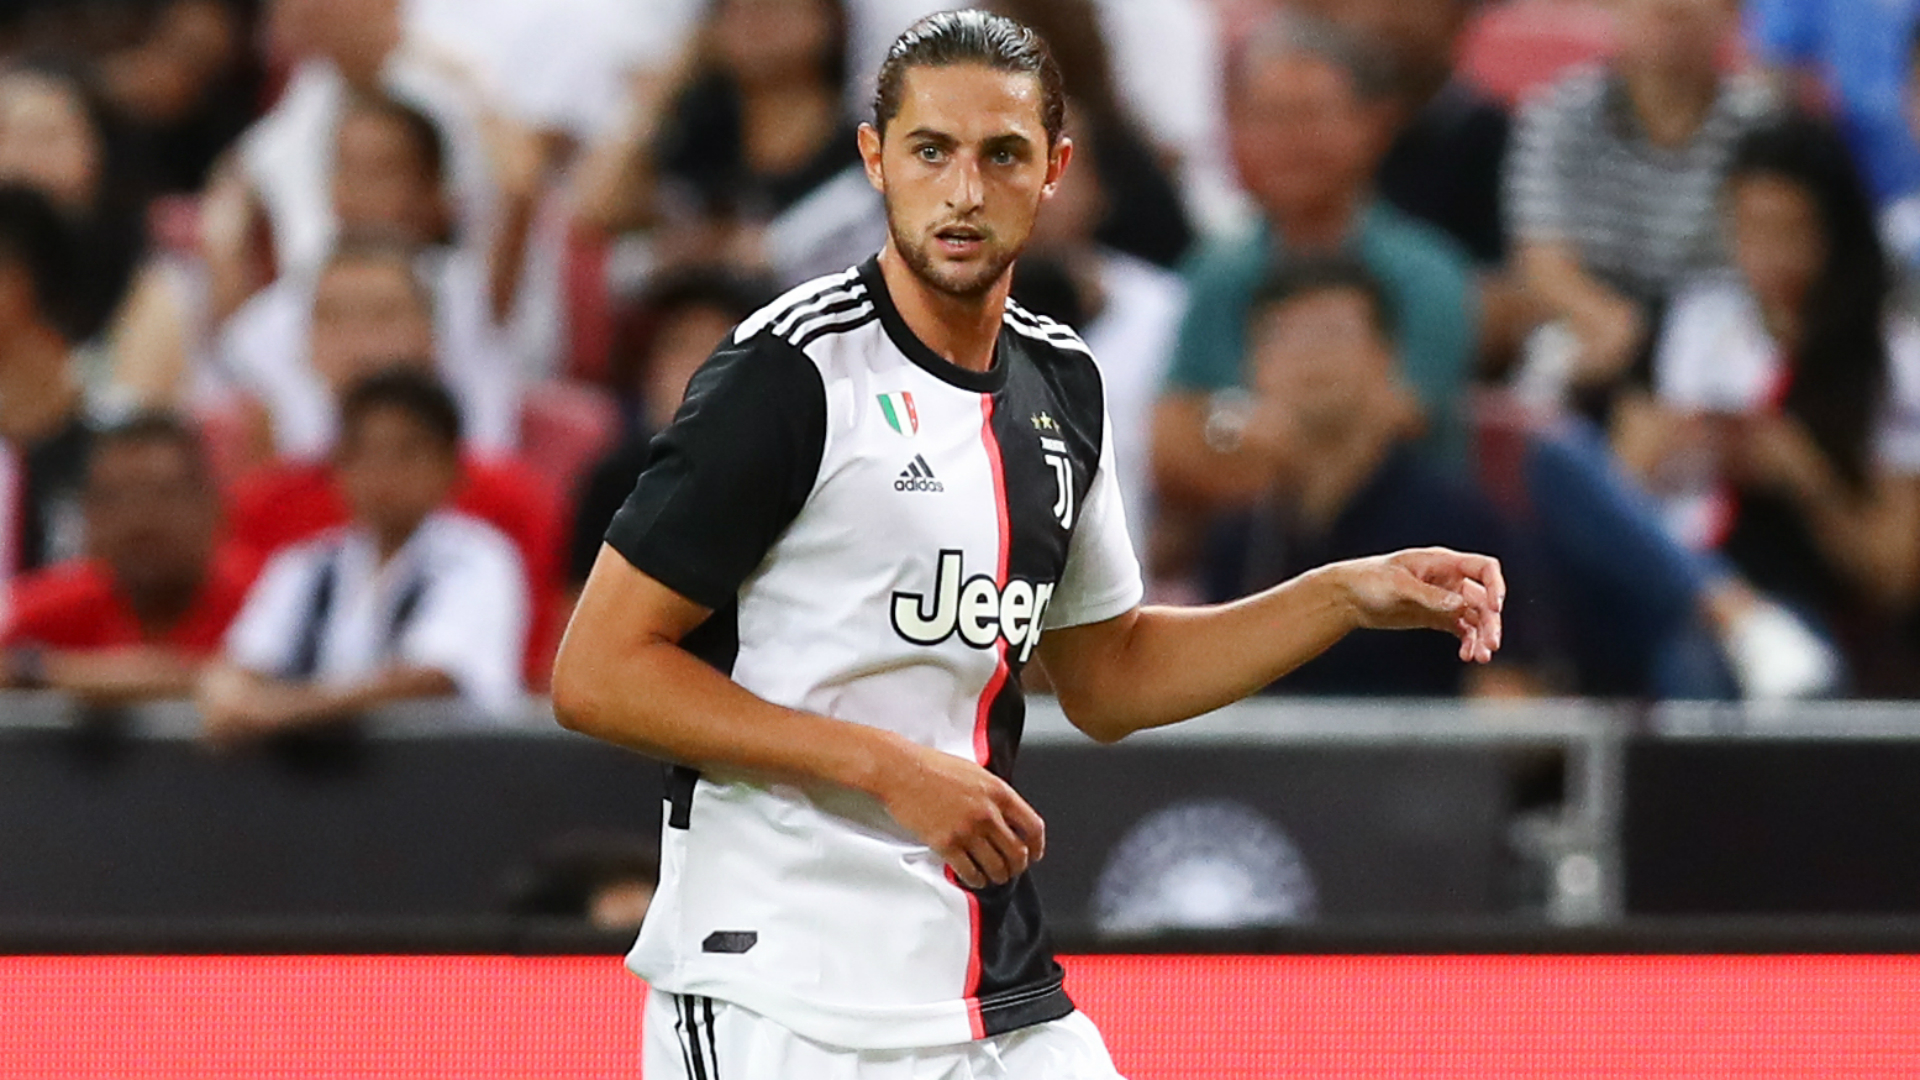 Juventus midfielder Adrien Rabiot praised team-mate and five-time Ballon d'Or winner Cristiano Ronaldo ahead of Saturday's Serie A opener.